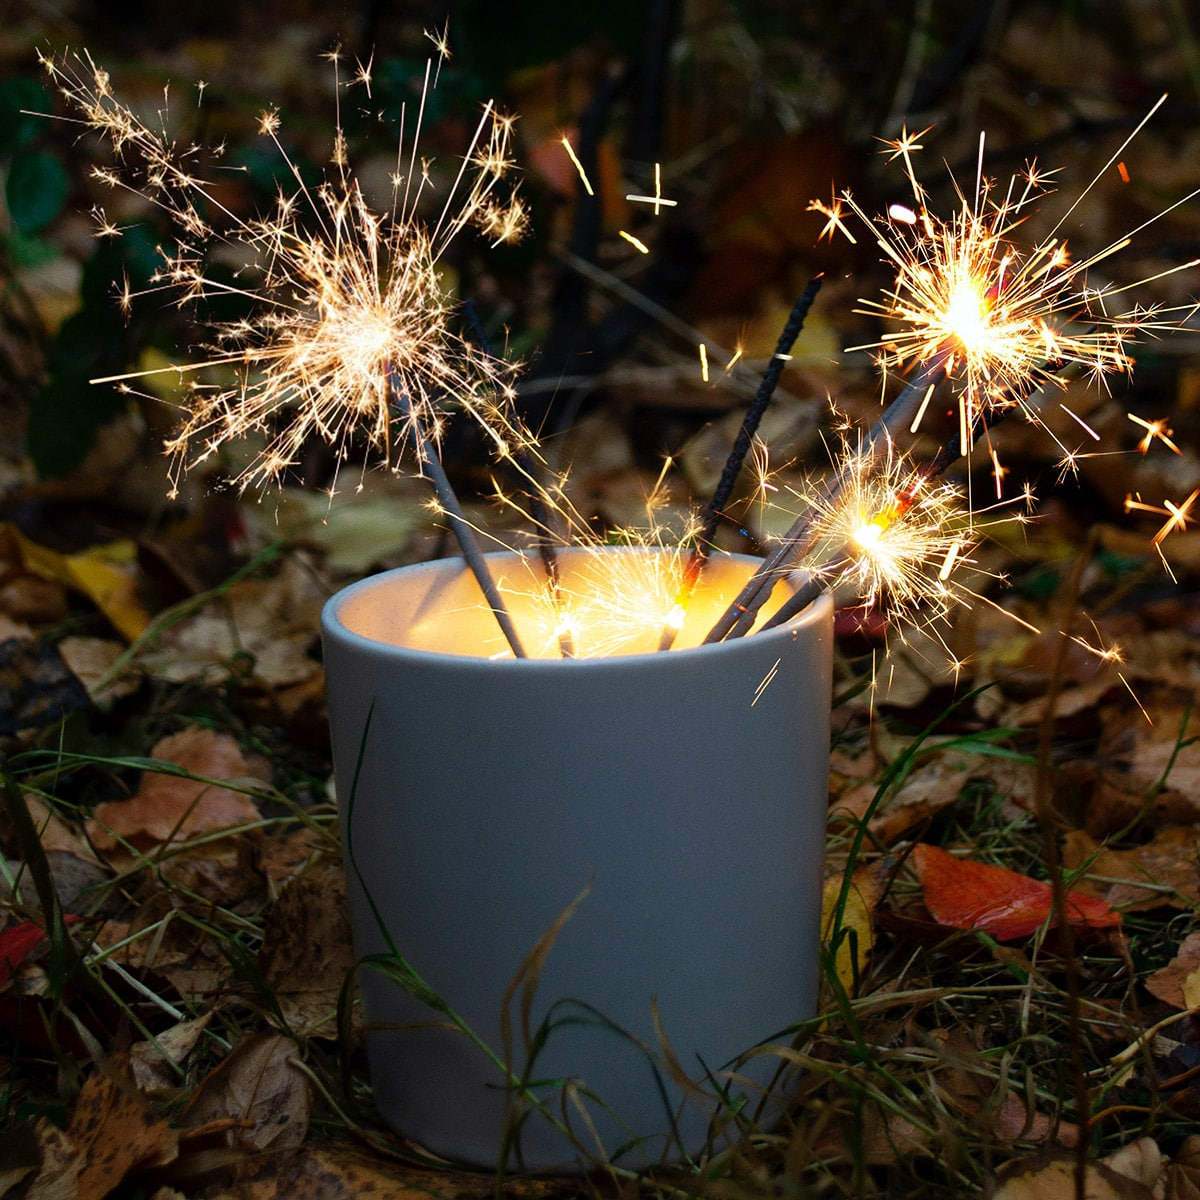 Image of a Ceramic Centerpiece with Sparklers for Weddings Inside